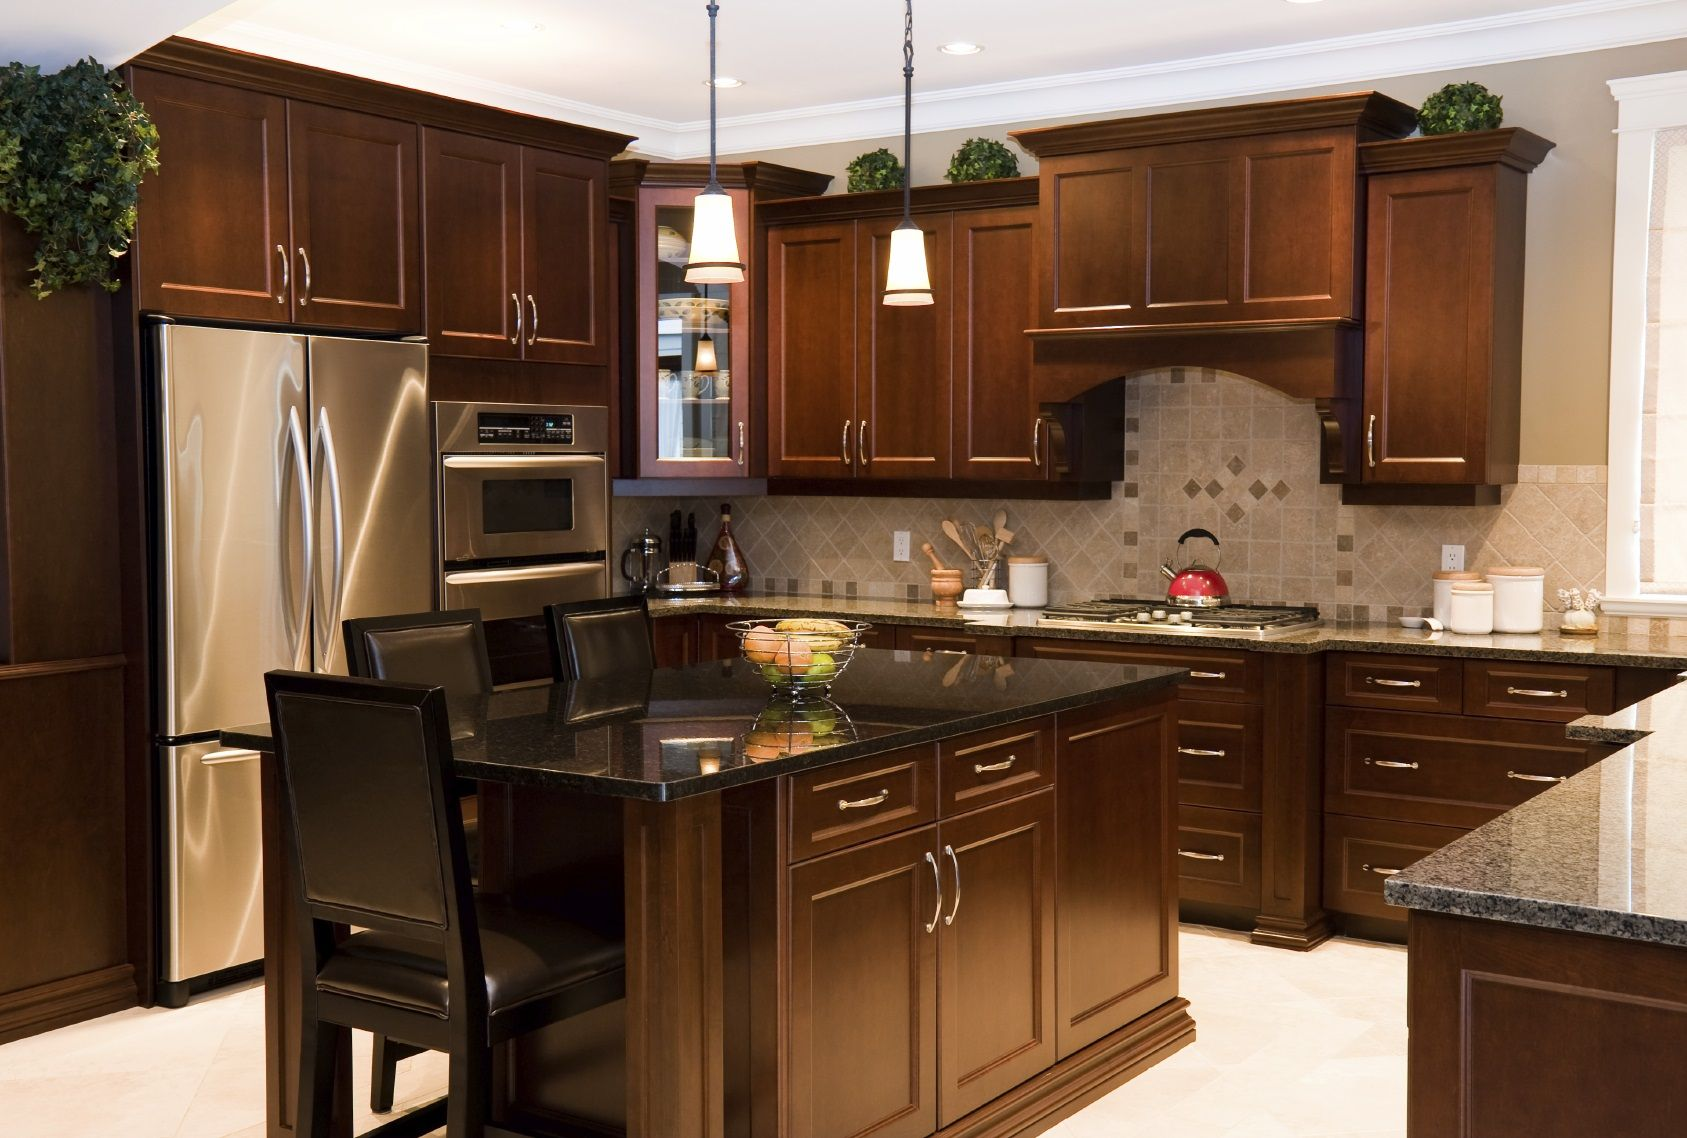 cabinets with doors andikan kitchen wall black cabinet me glass